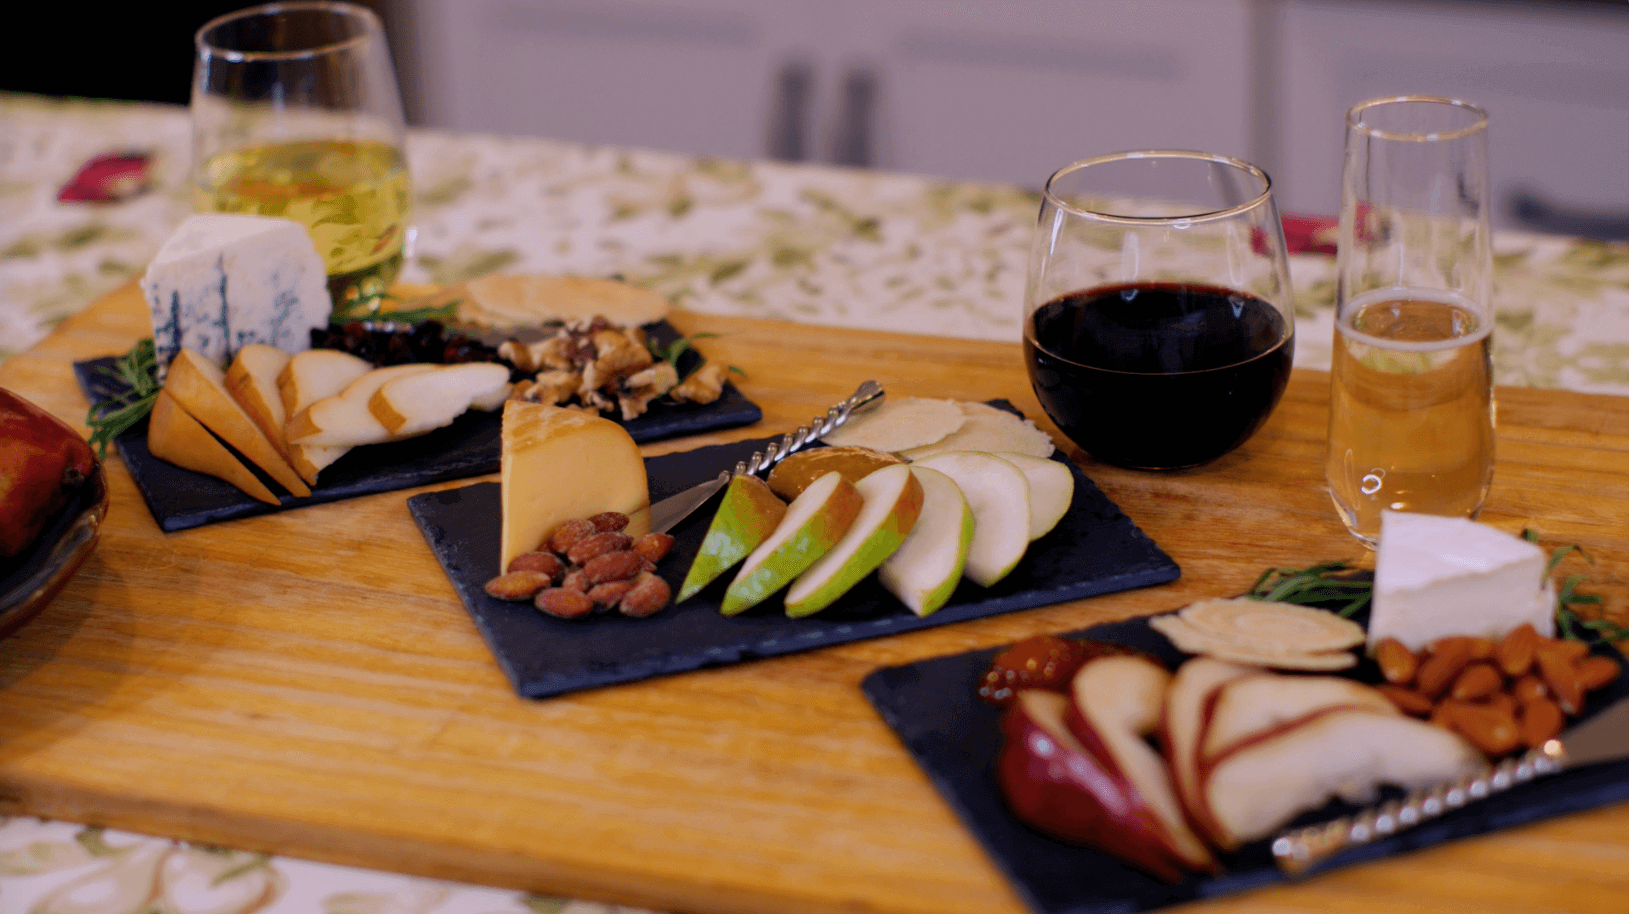 Pear, Cheese, and Wine Pairing Guide   Holiday Pear & Cheese Tray Ideas